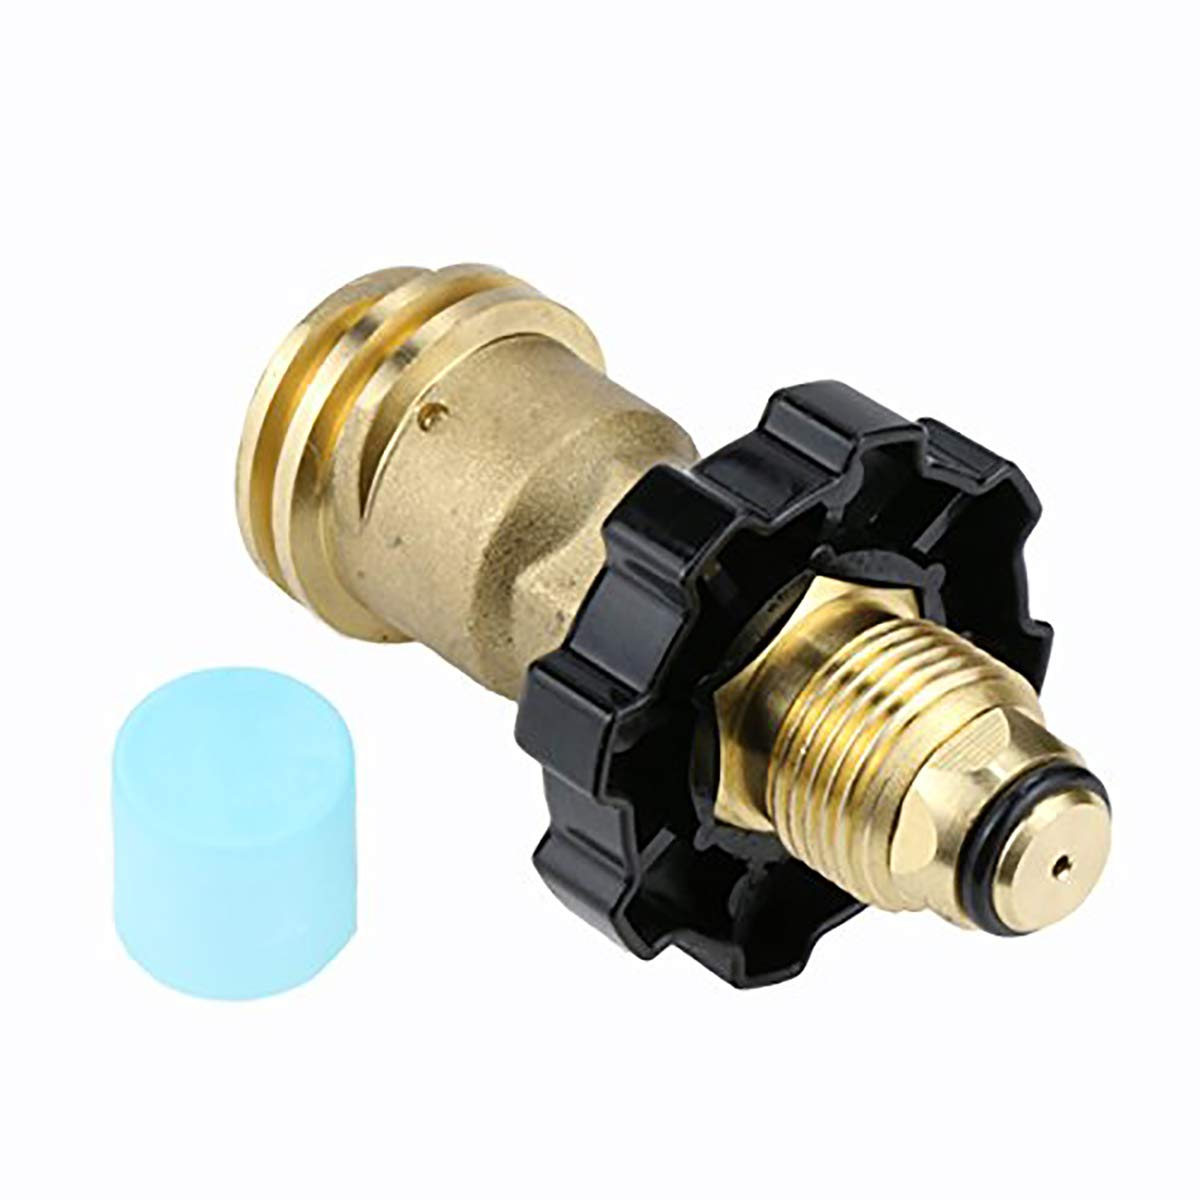 GASLAND Propane Adapter, POL to QCC1 Type1 Propane Tank Adapter with Wrench, LP Gas Valves Grill Connector for Propane Cylinder, Suitable for RV Camper, Cylinder, BBQ Gas Grill, Heater